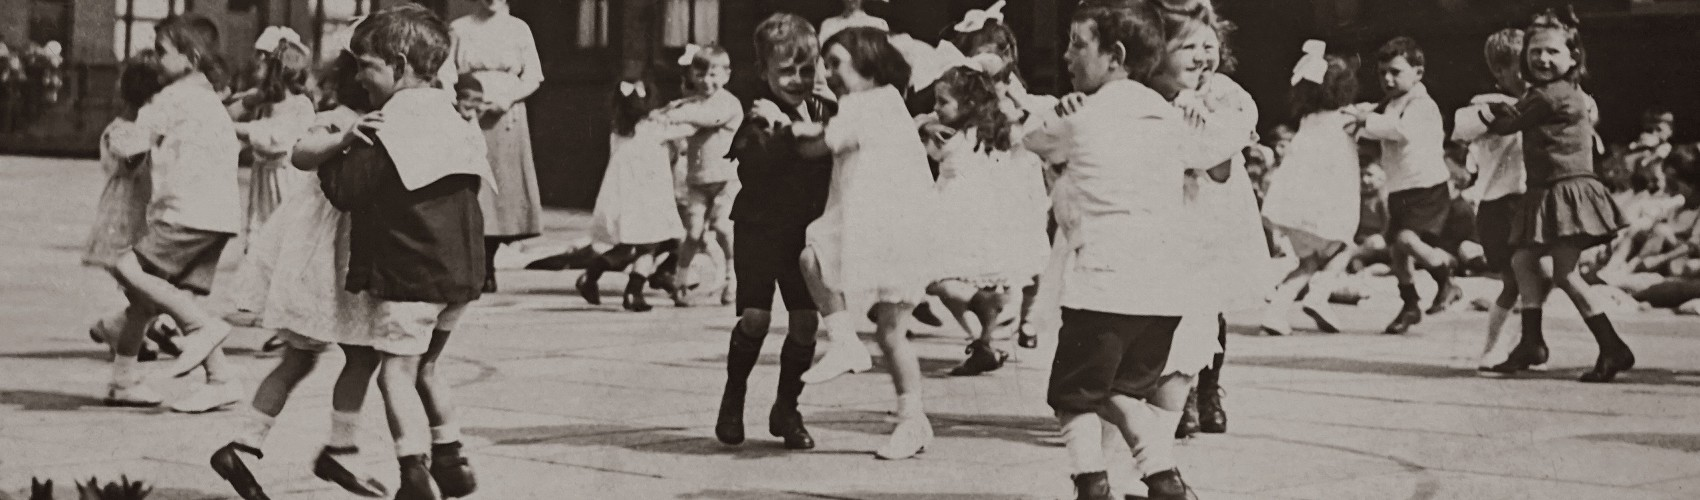 children-dancing-on-street